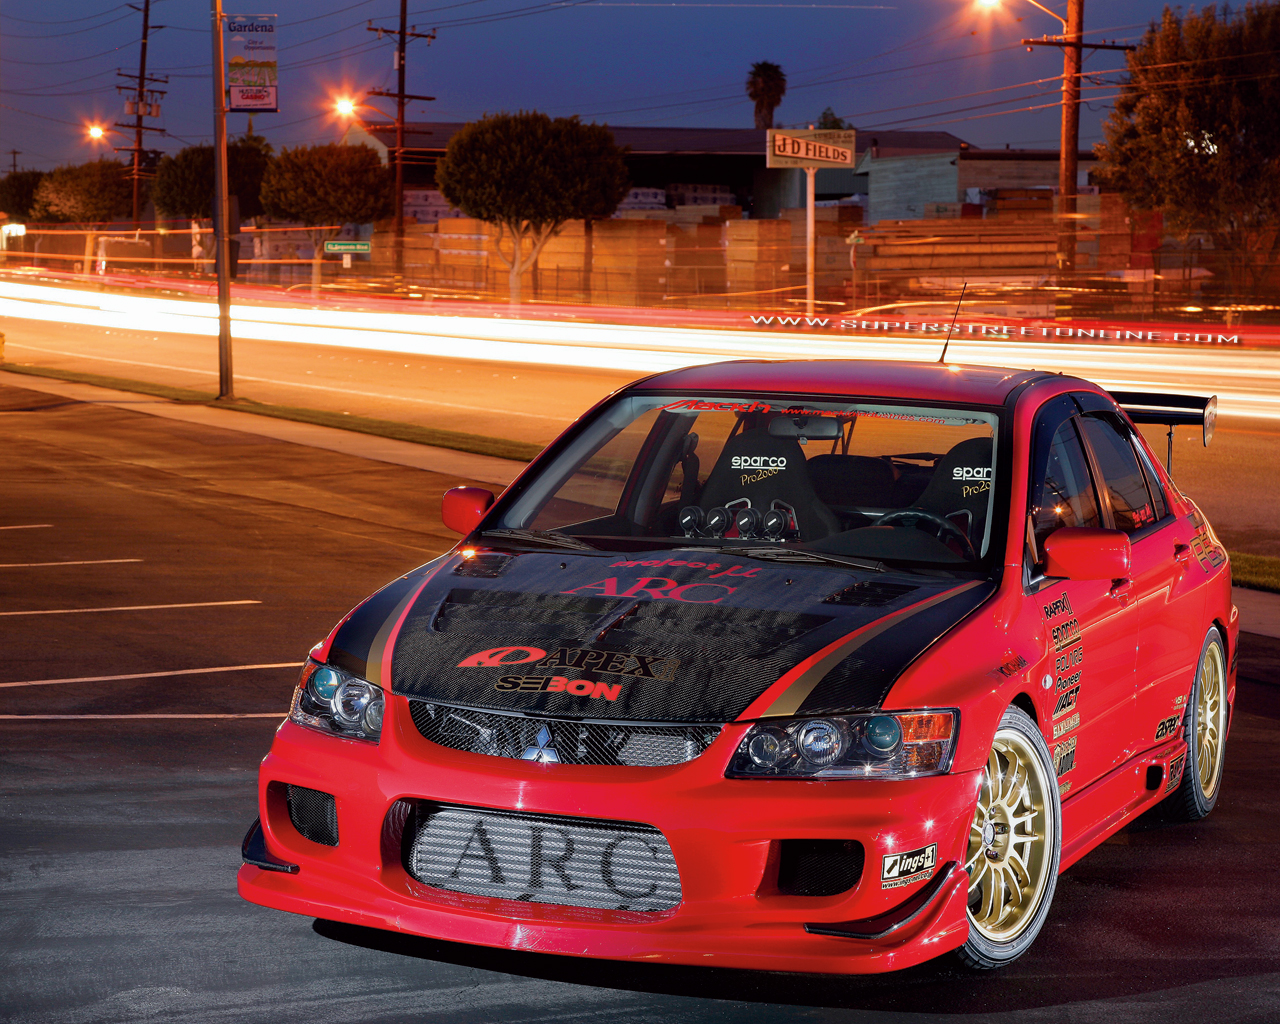 Download Image Search Import Model Wallpapers Stuff Super Street